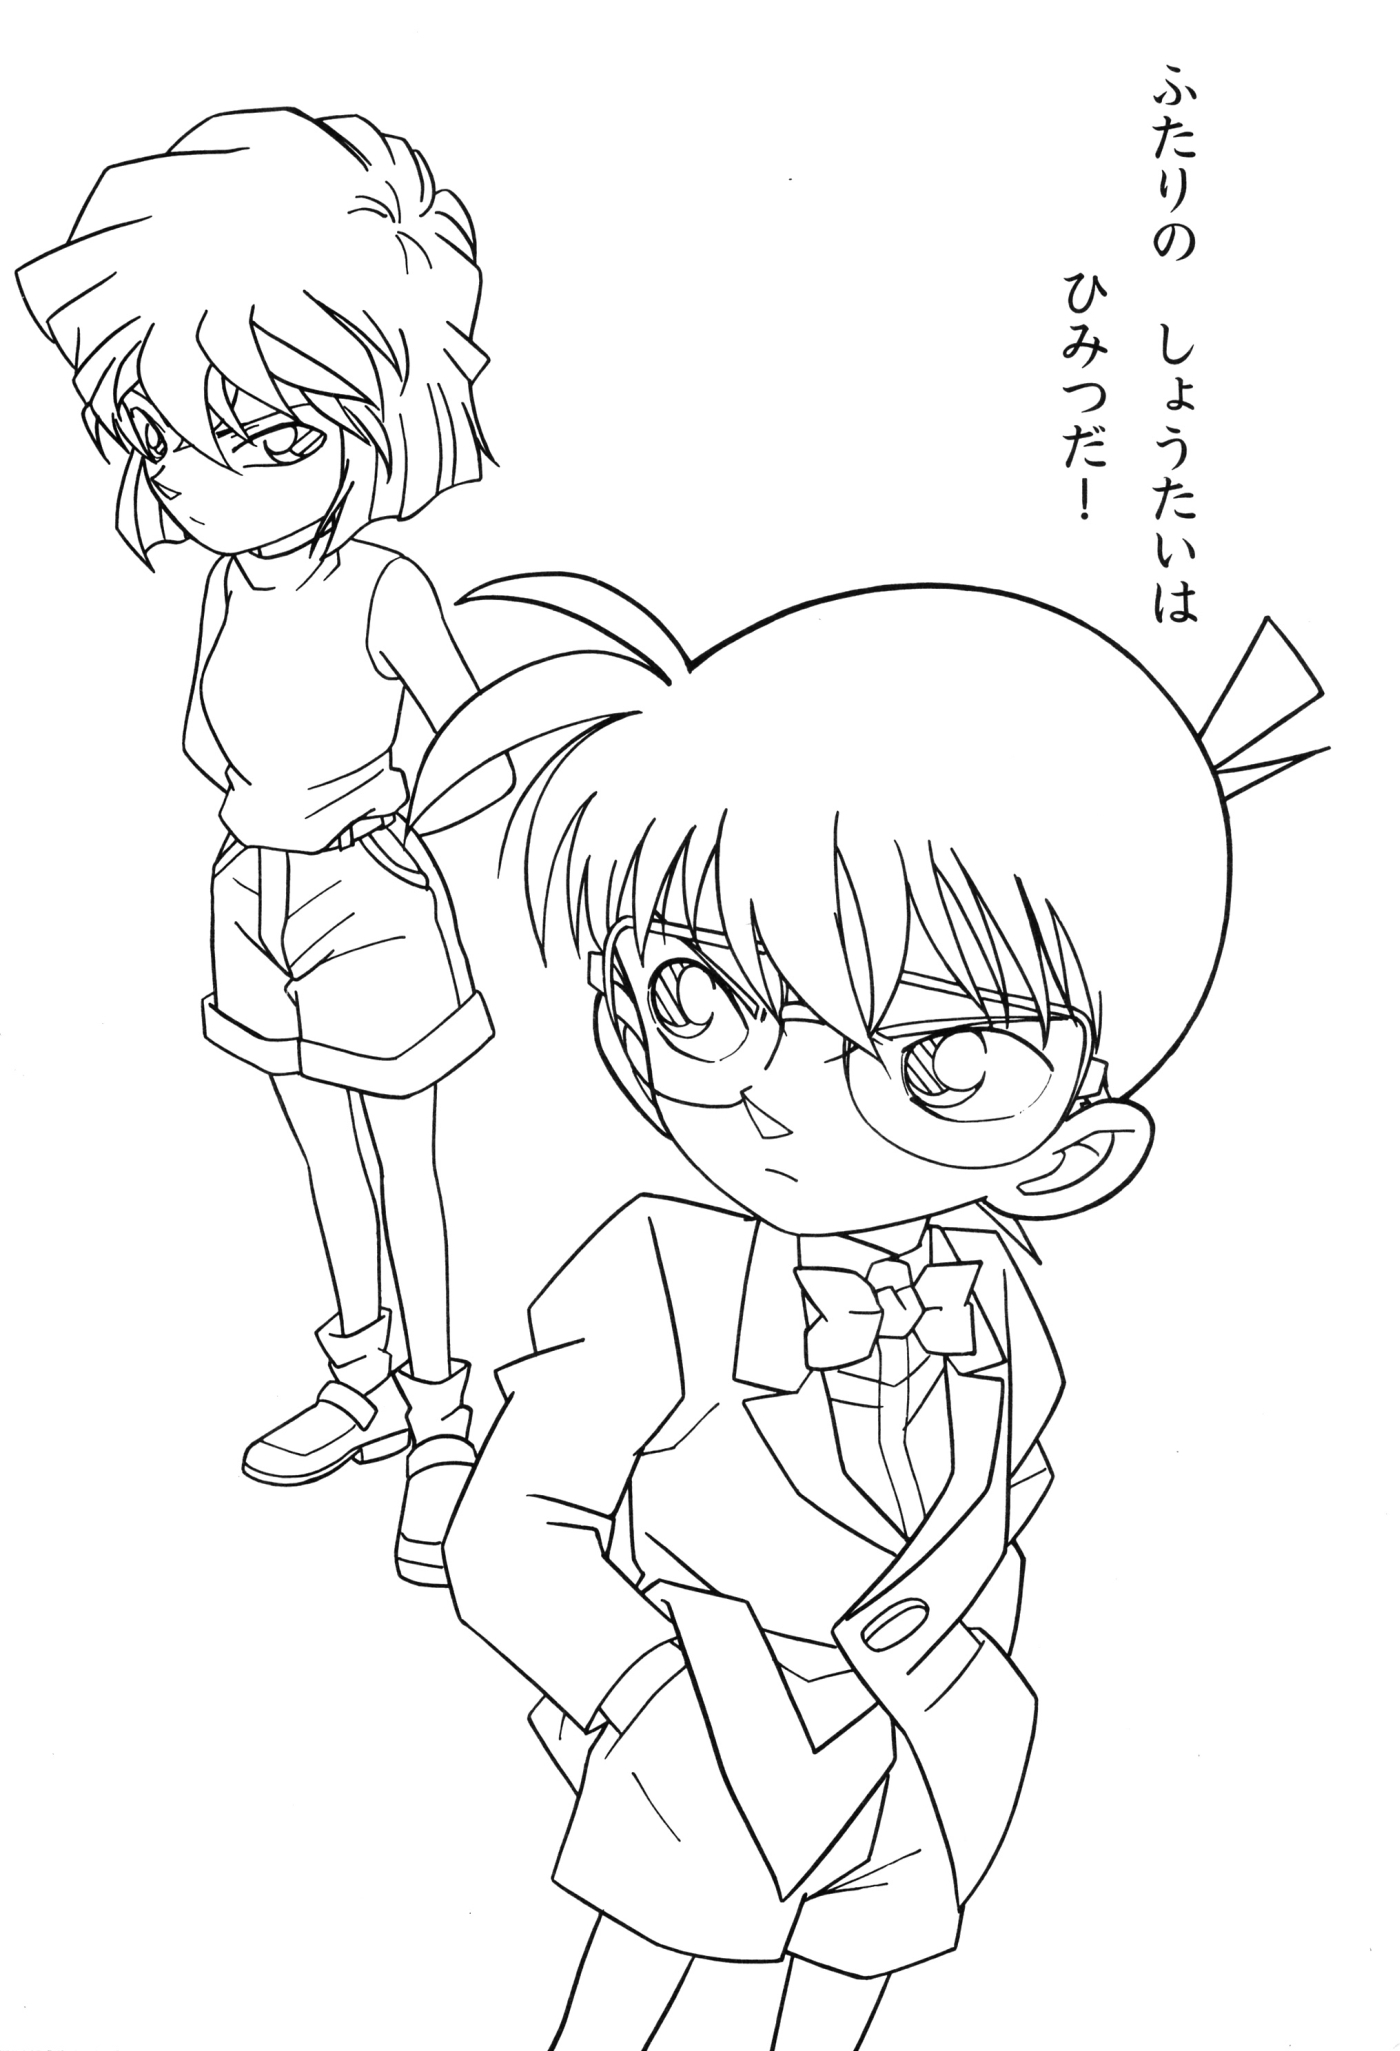 Detective Conan Coloring Pages Detective Conan Coloring Pages